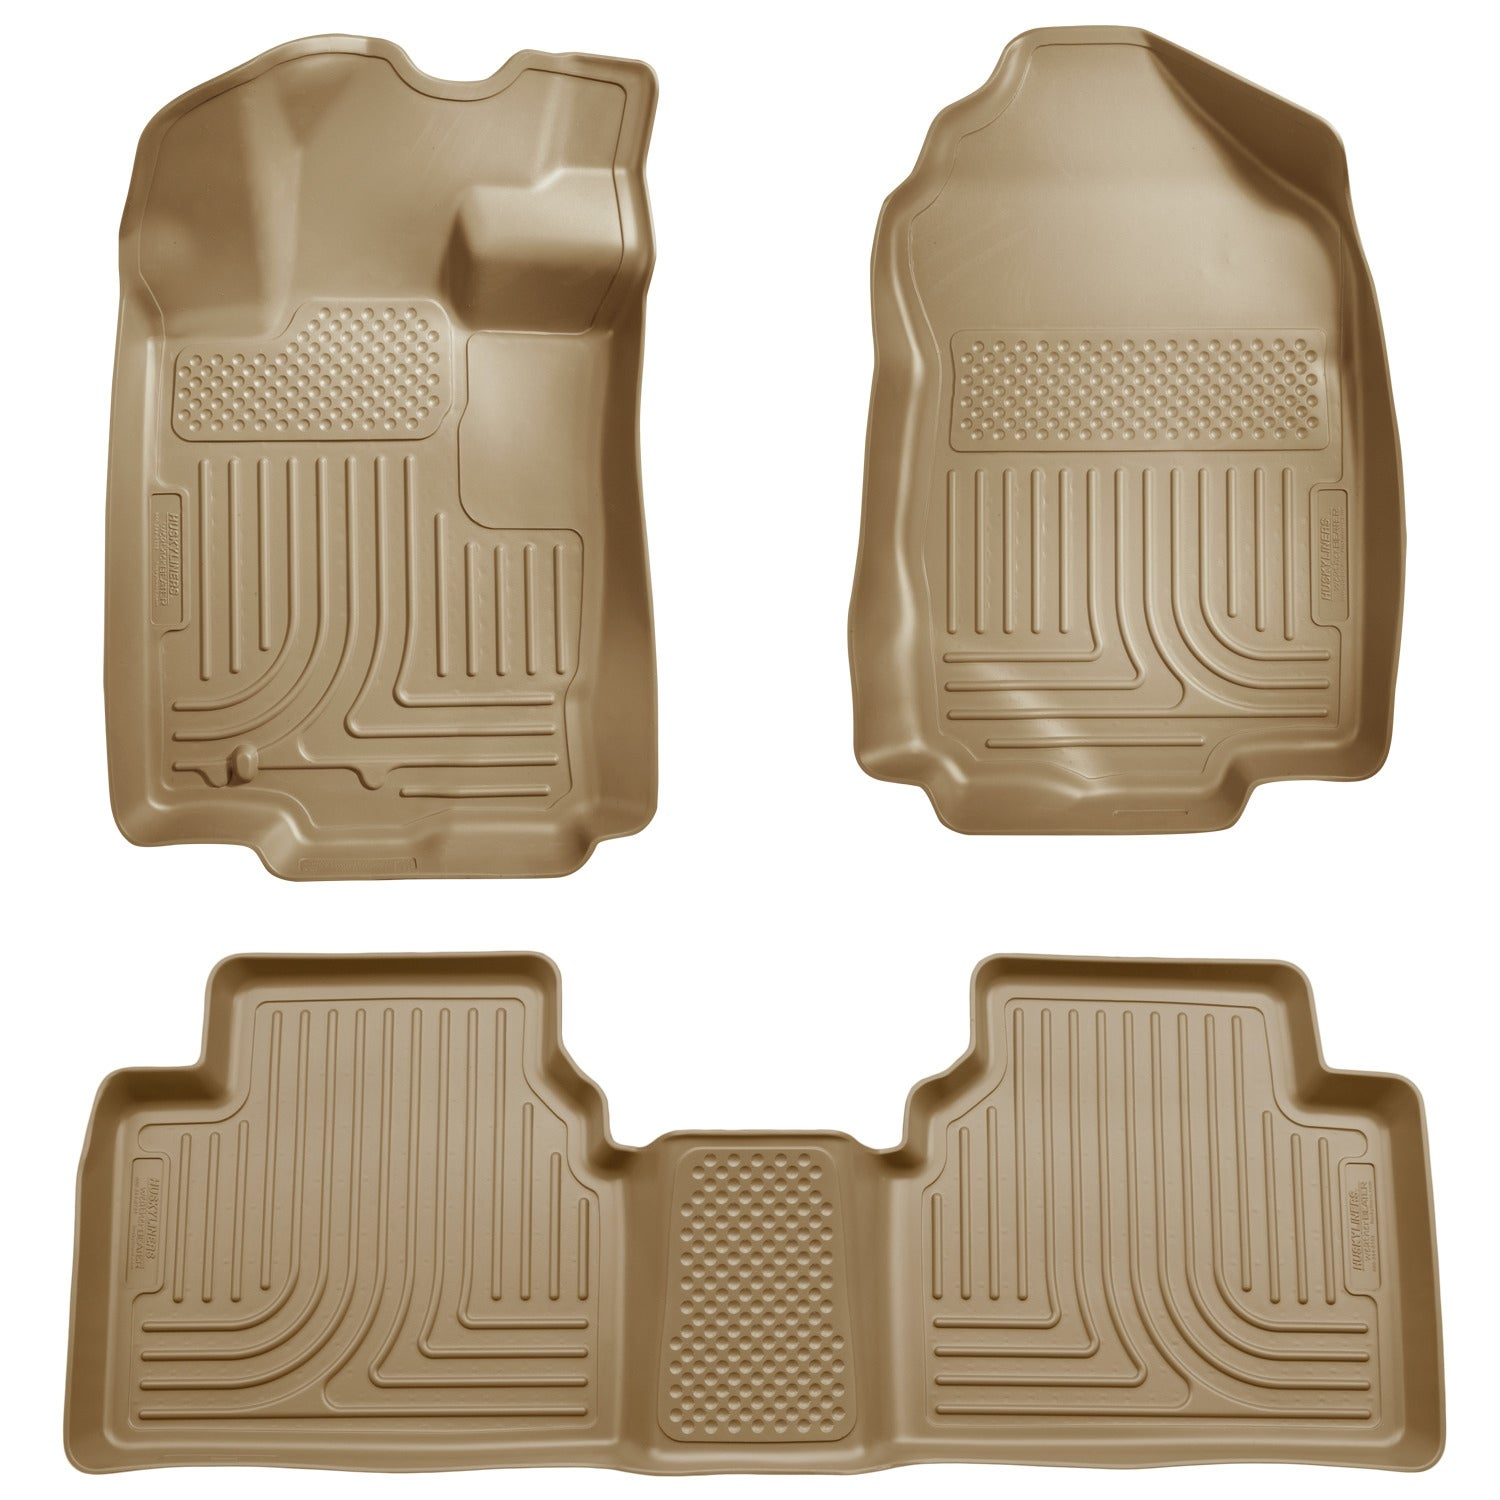 Husky Weatherbeater 2010-2012 Ford Fusion FWD Tan Front & Rear Floor Mats/ Liners - Free Shipping Today - Overstock.com - 21164721